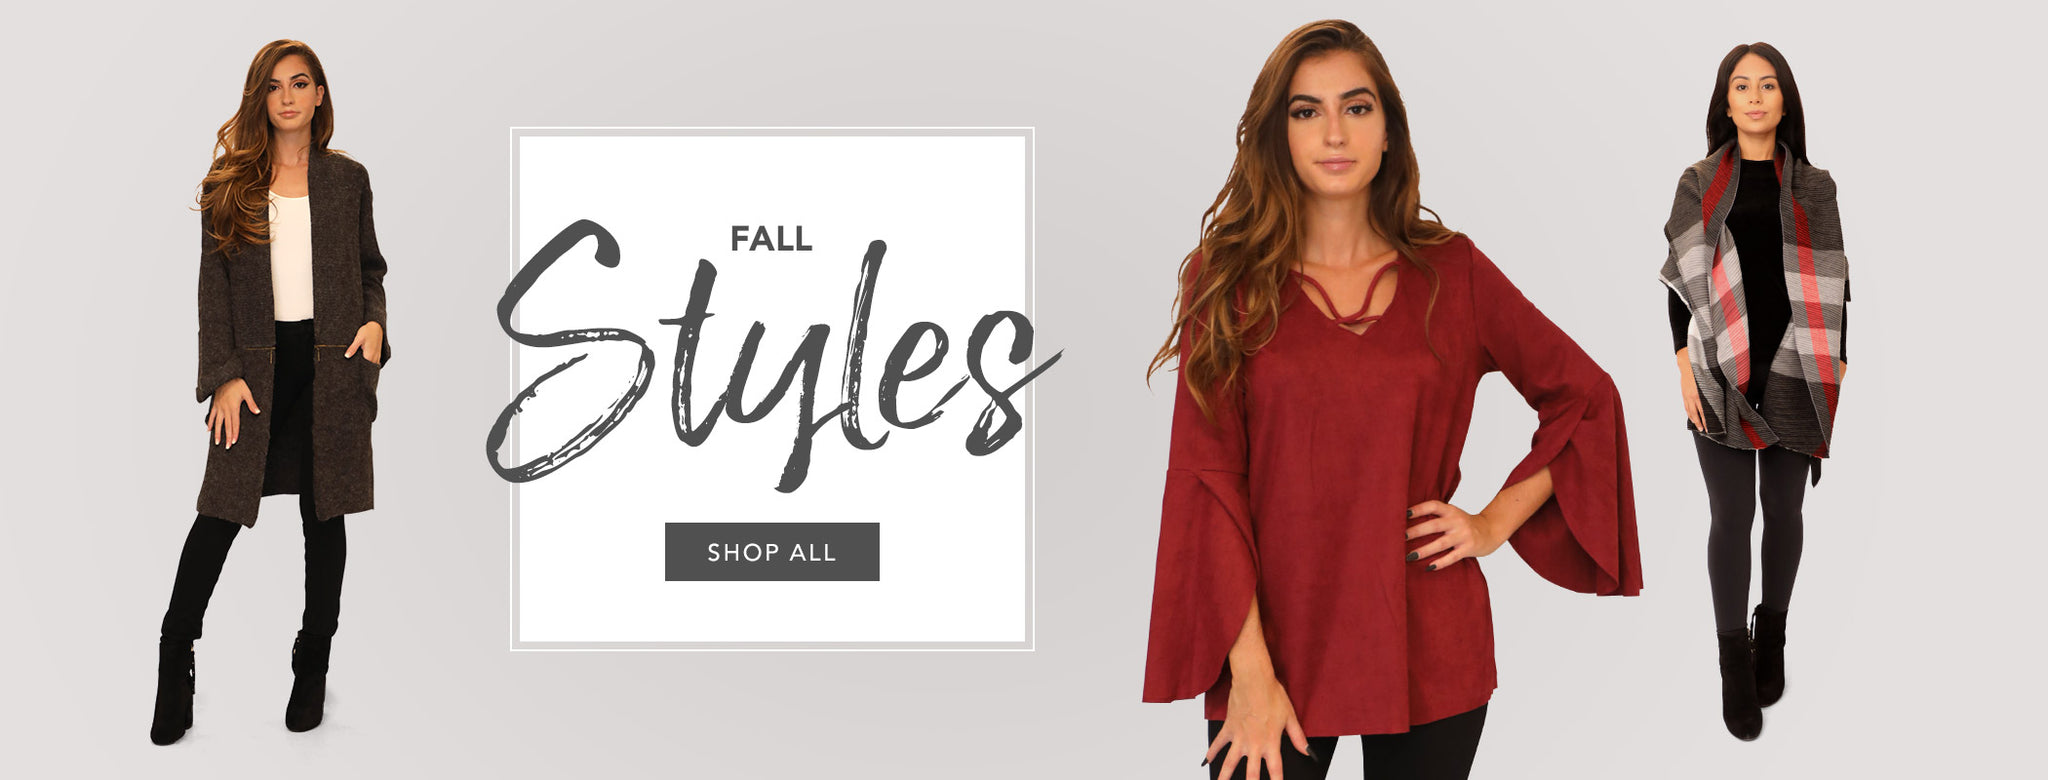 Fall Styles - Show Now